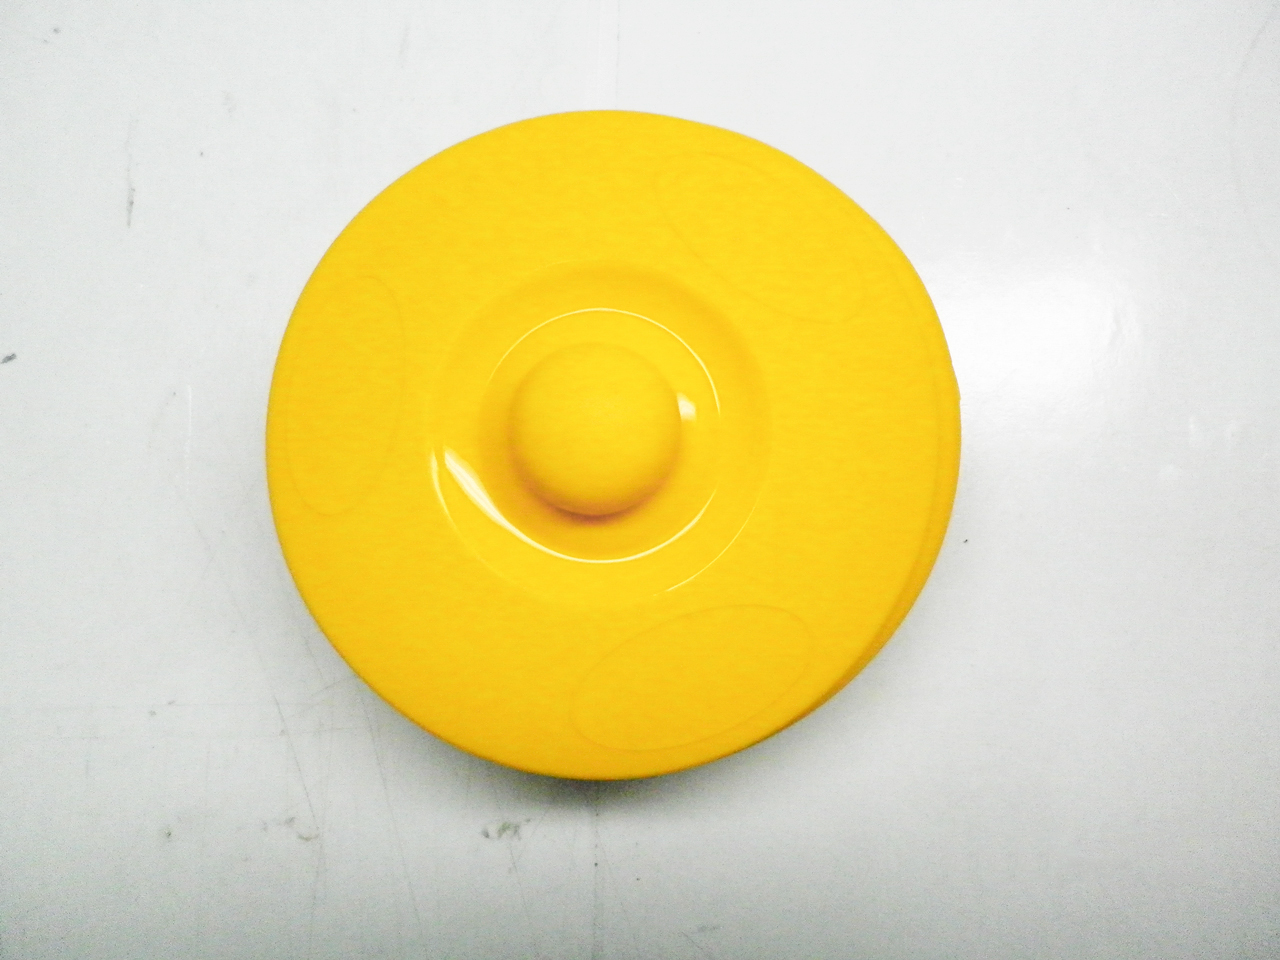 http://www.refinehksilicone.cn/data/images/product/20180418100303_157.jpg